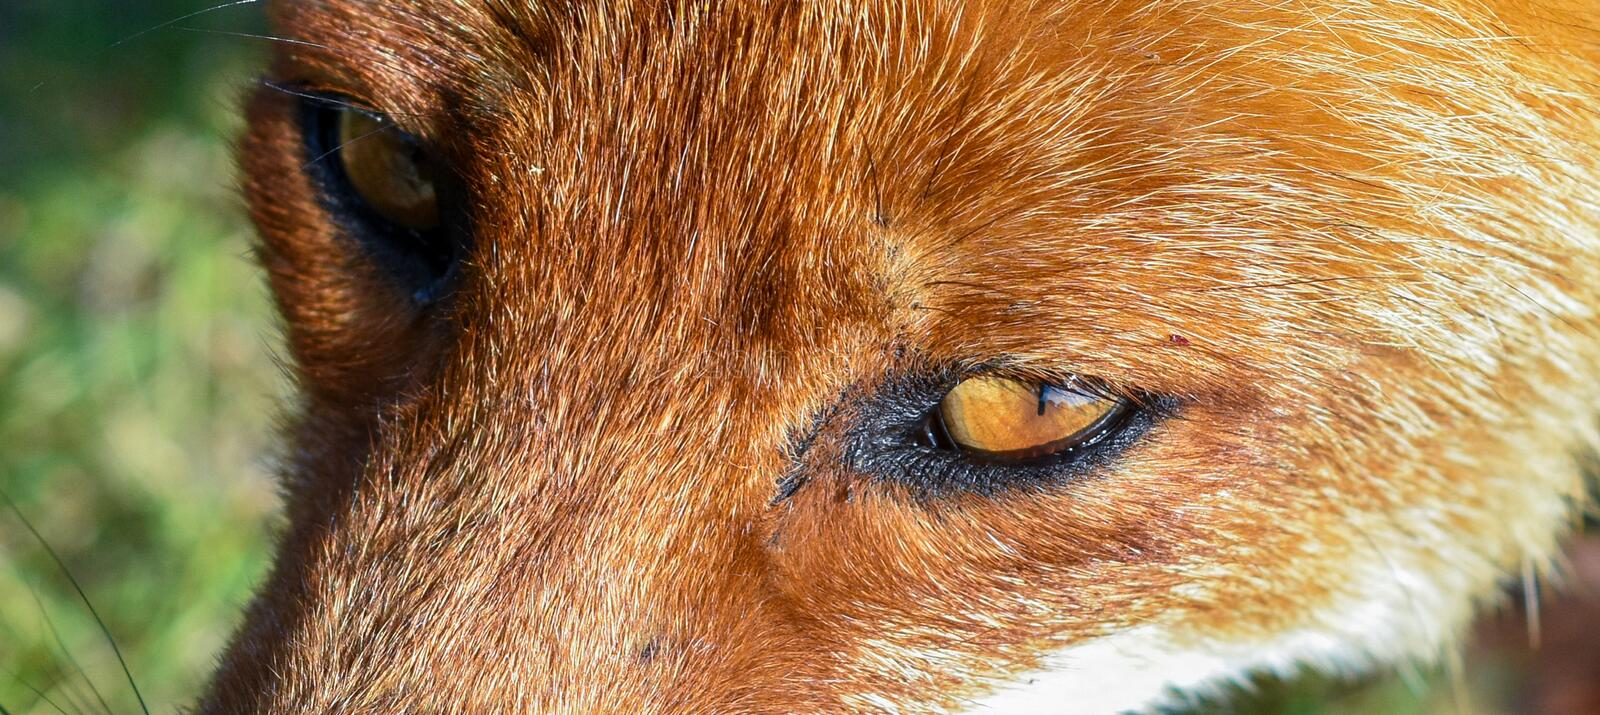 Detailed face close up portrait of a young red fox stock photos